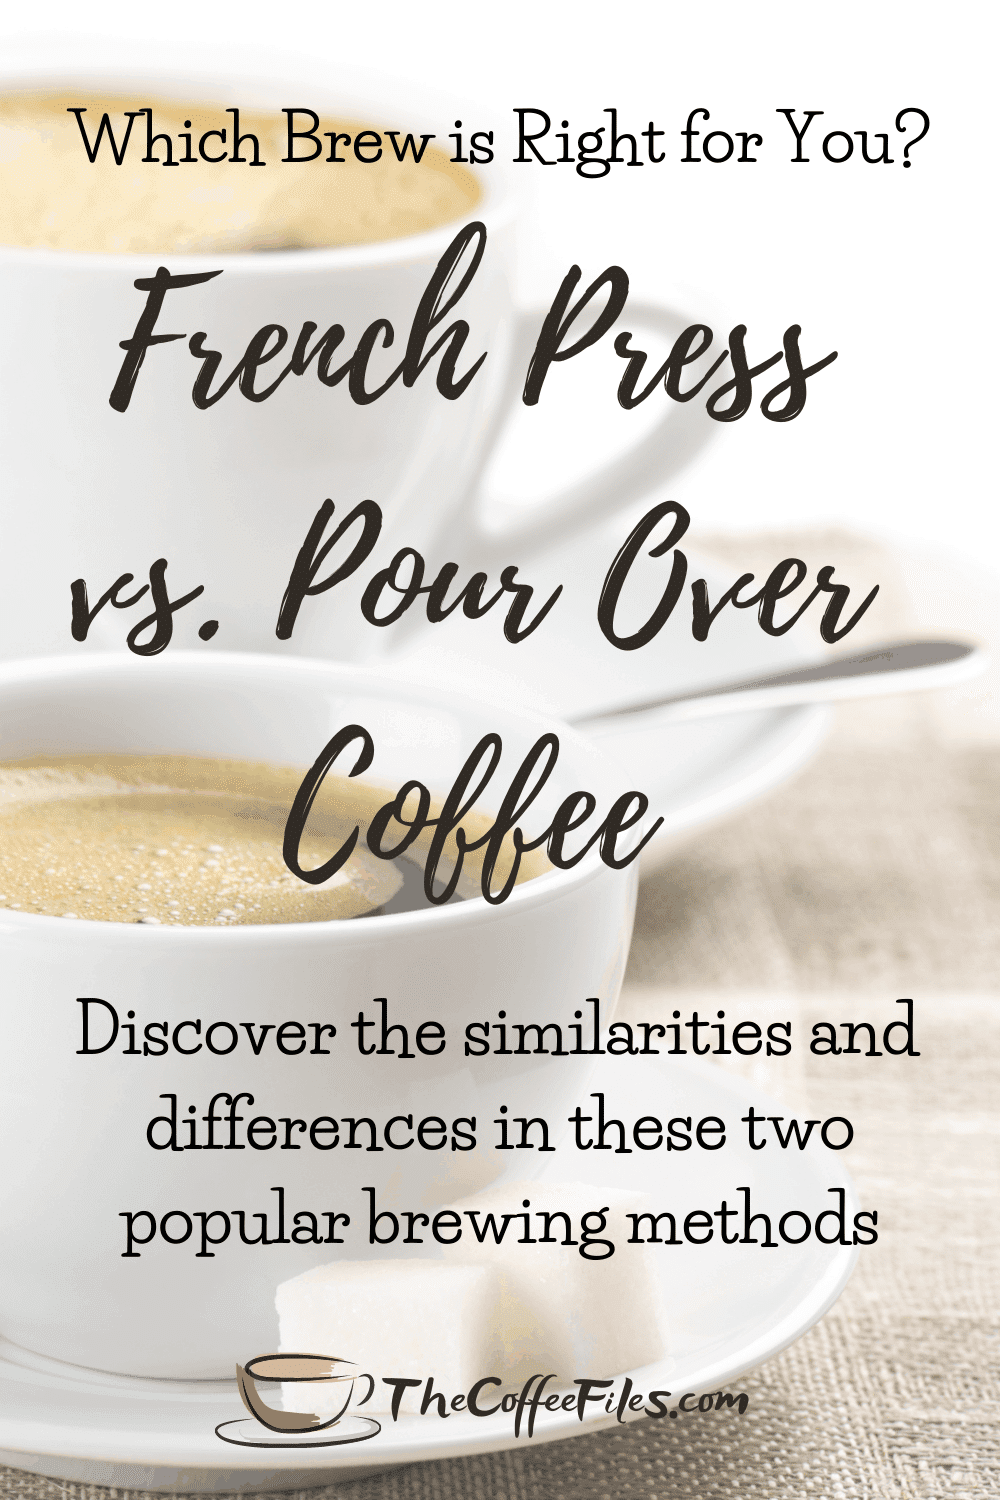 french press vs pour over coffee - which is better for you